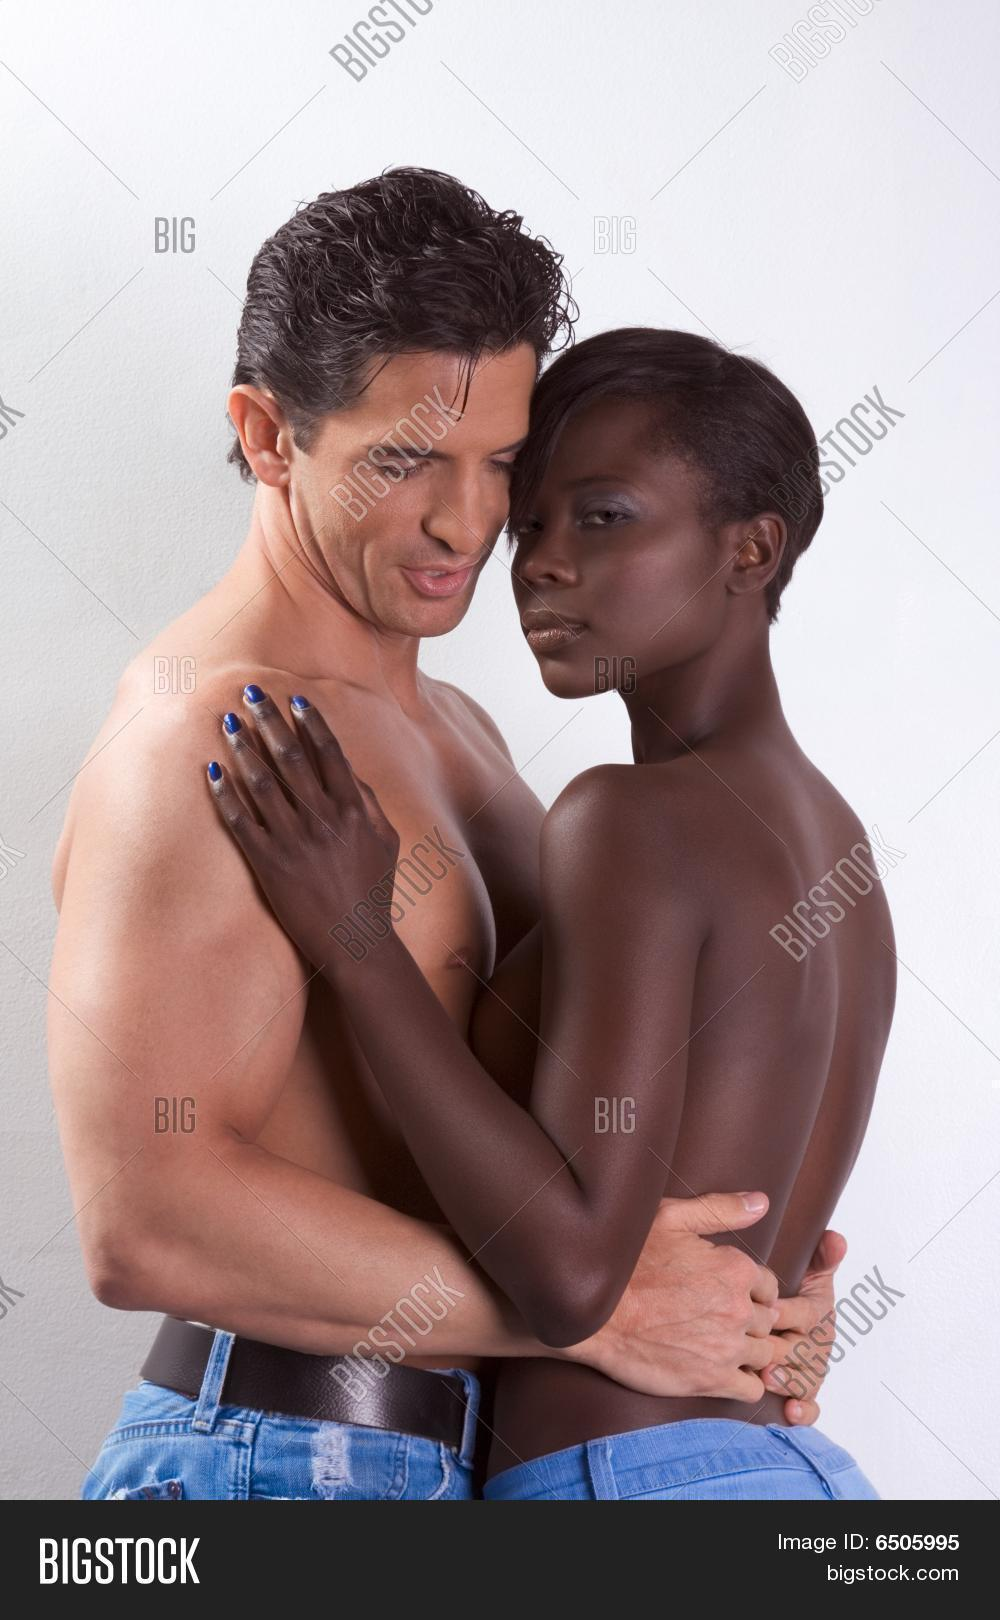 Naked african women and man in love